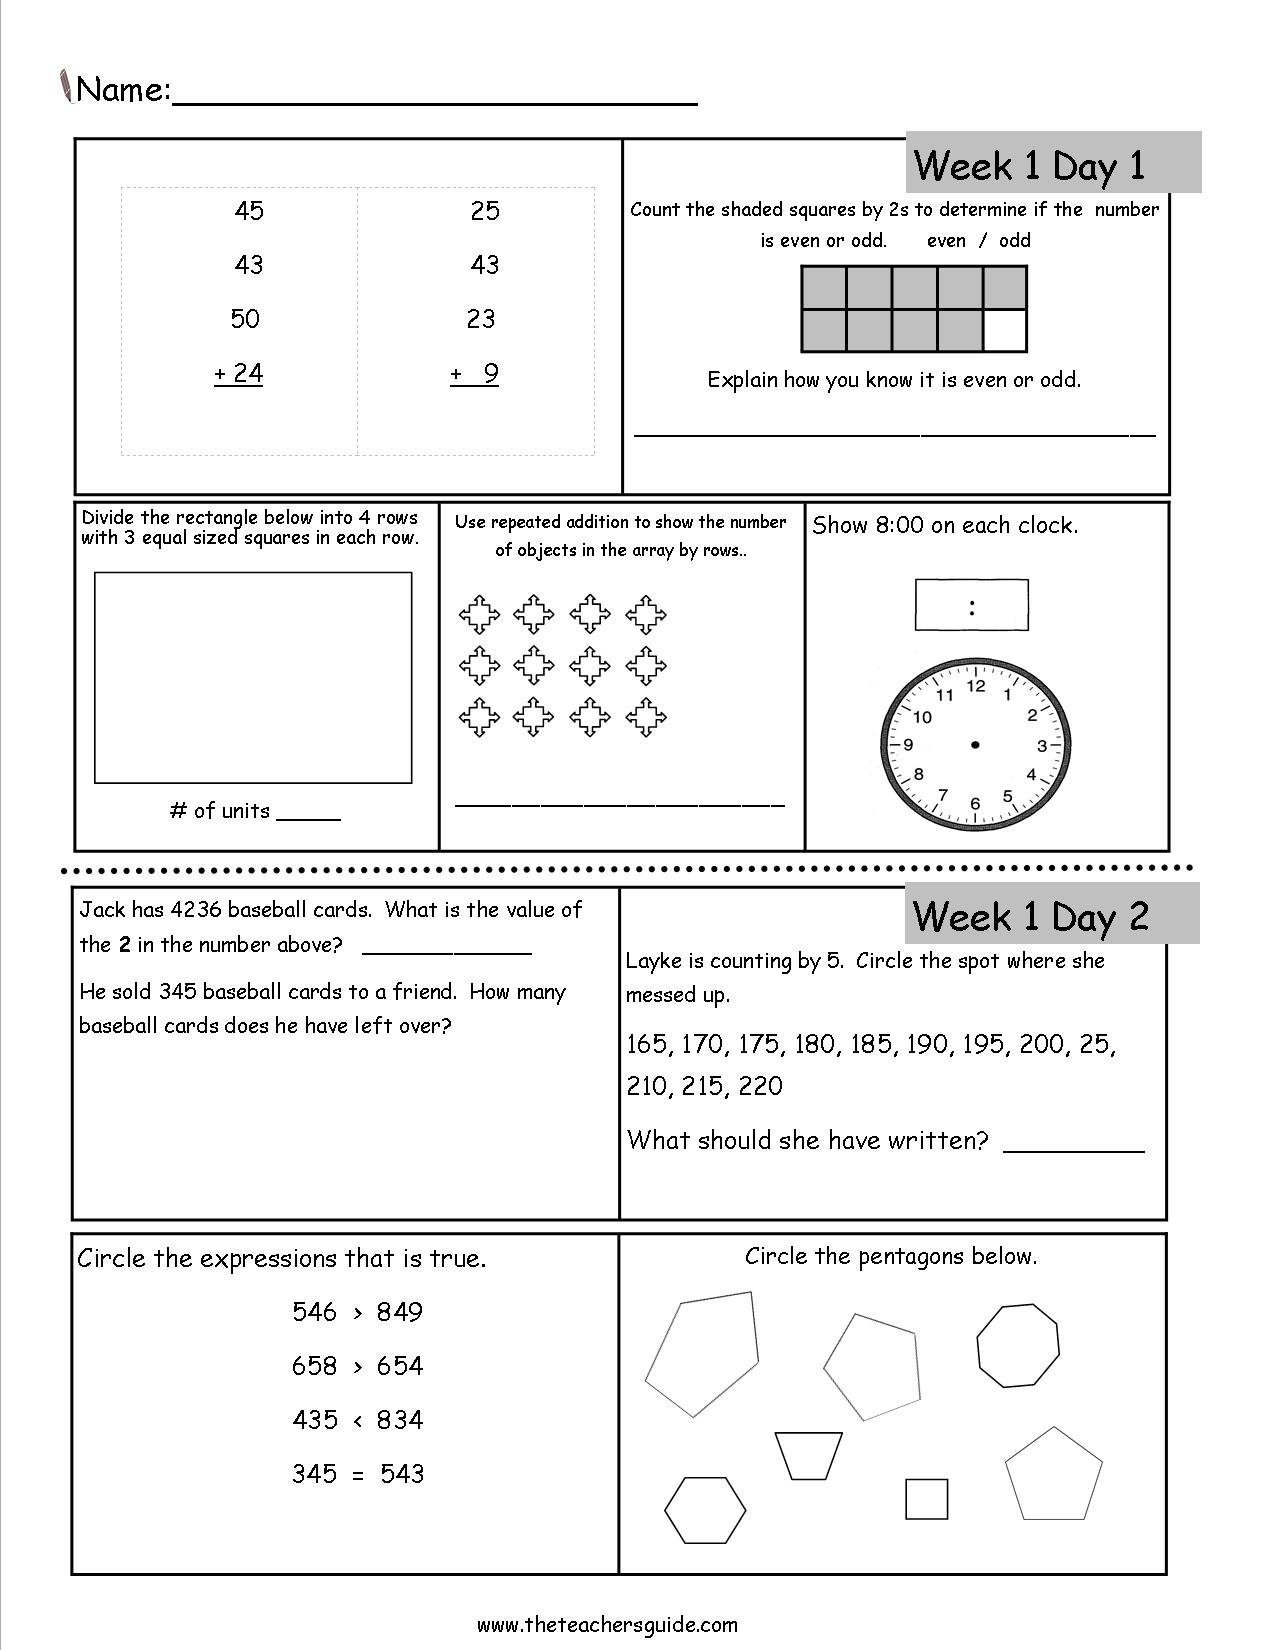 Free 3Rd Grade Daily Math Worksheets For 3Rd Grade Math Review Worksheets